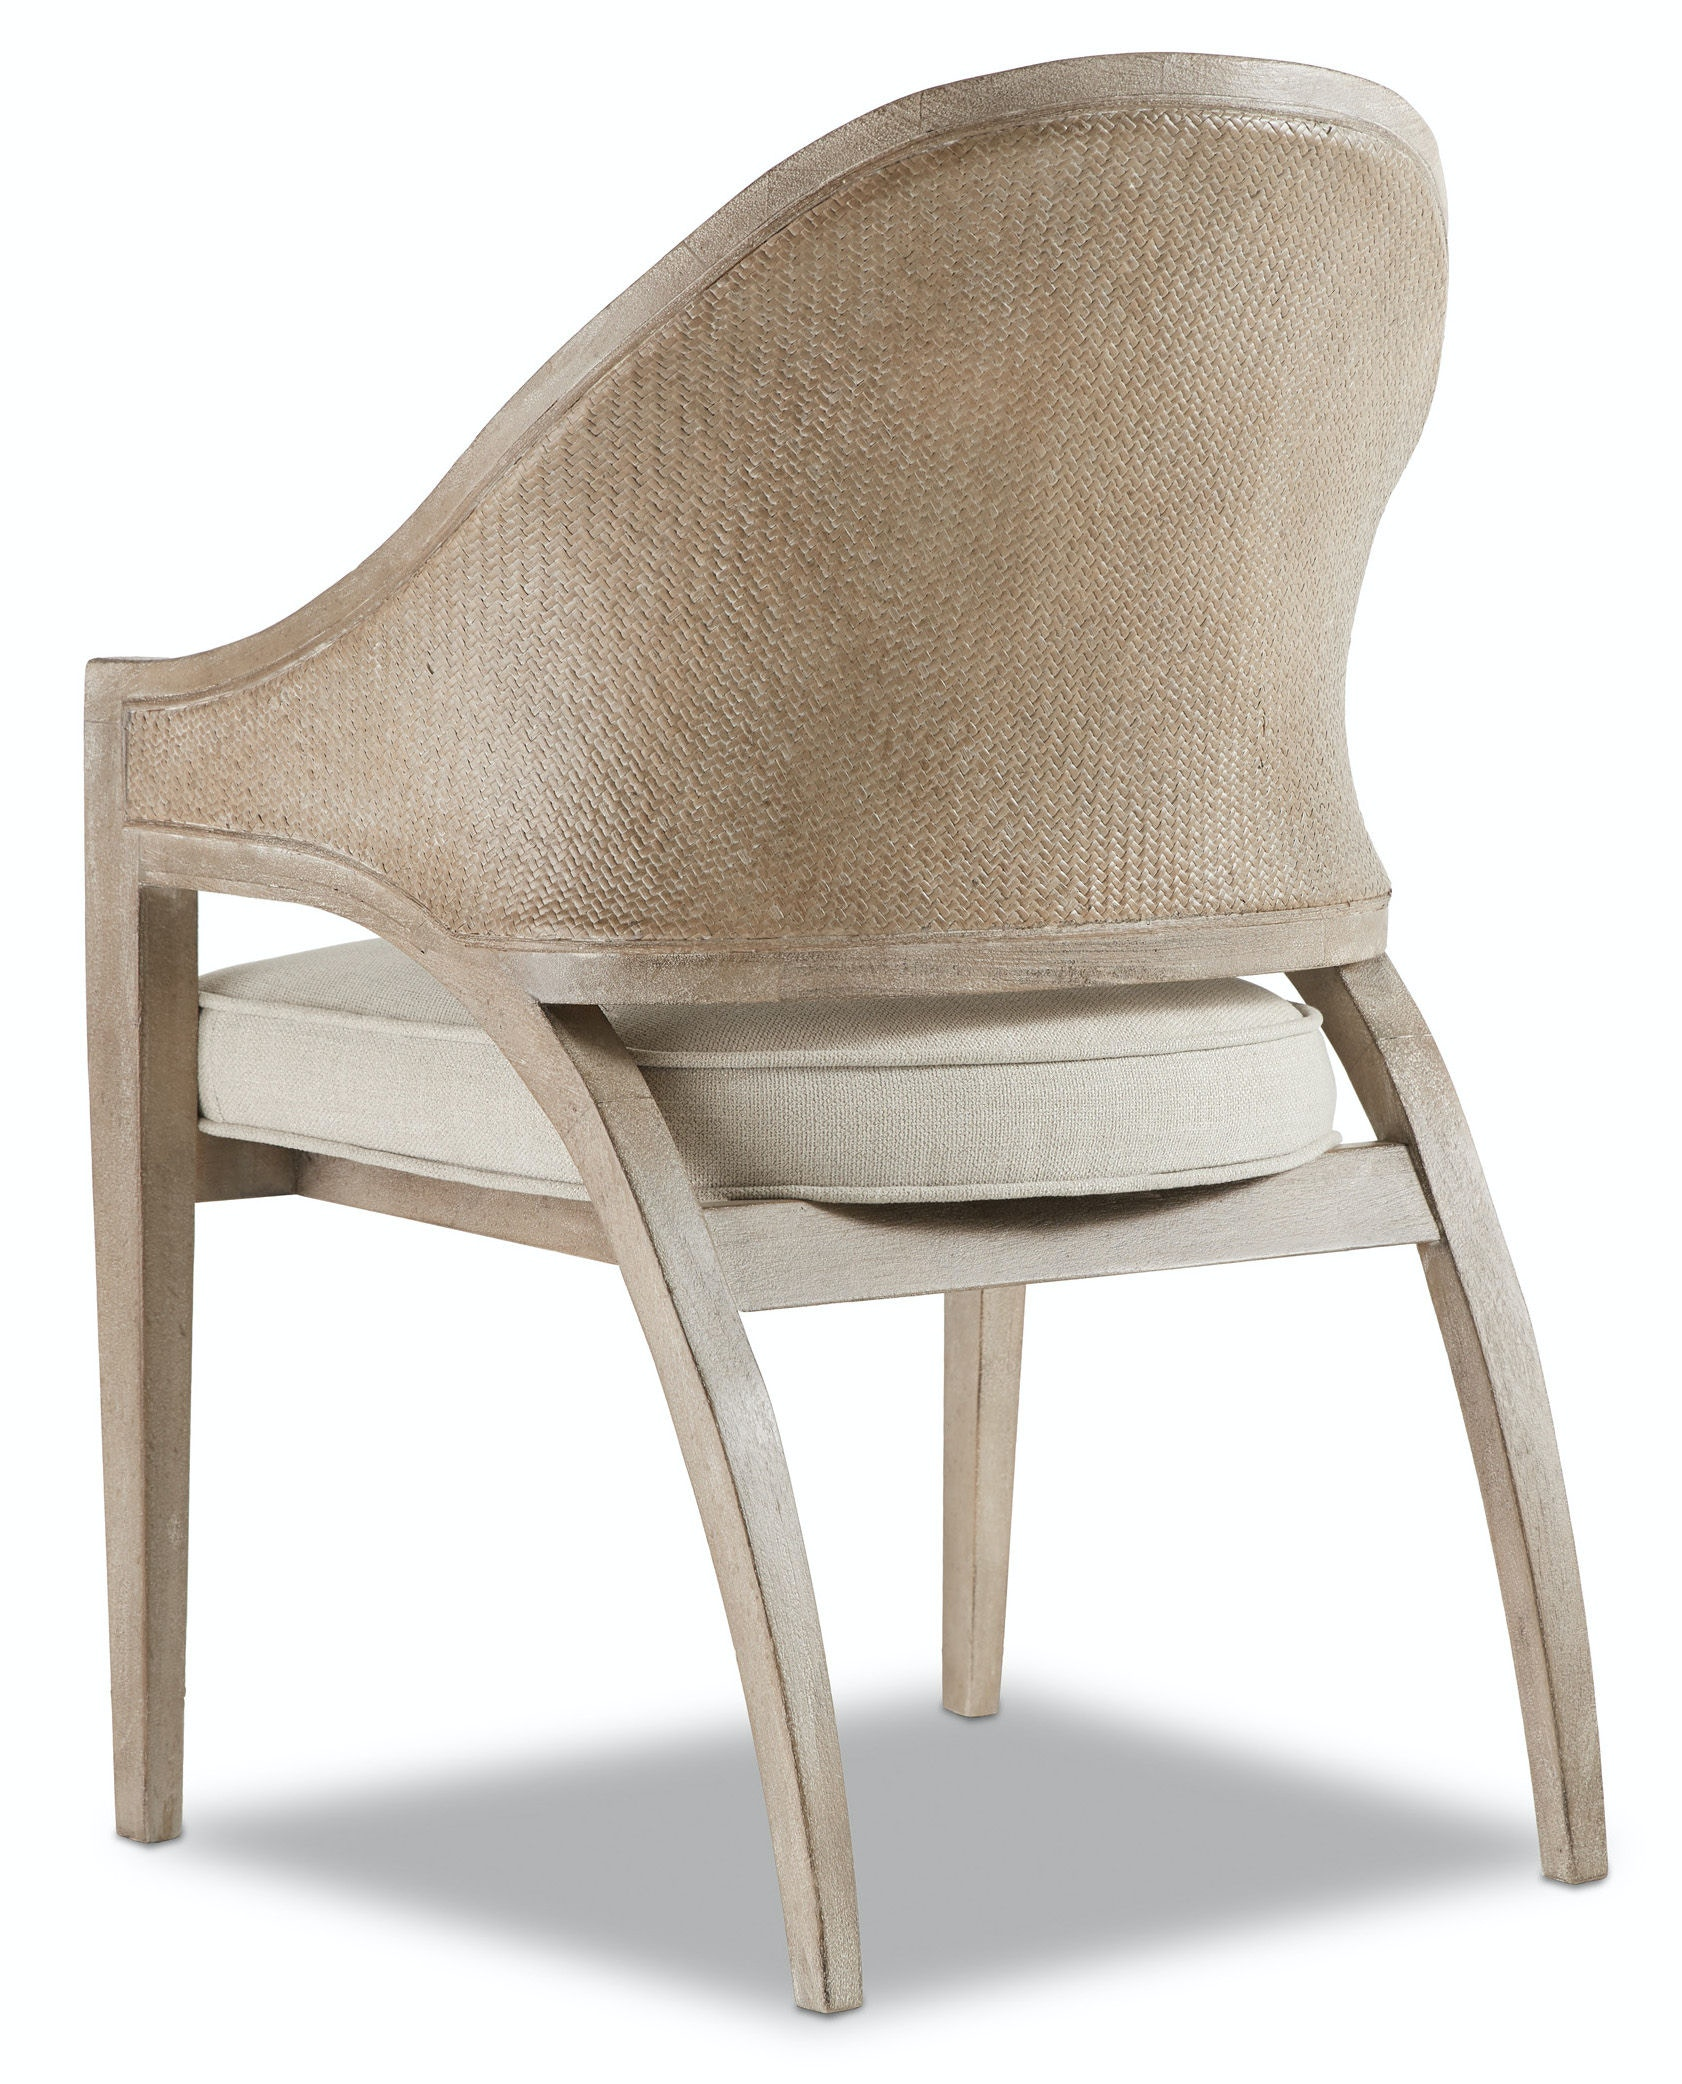 Attrayant Hooker Furniture Affinity Sling Back Chair   Raffia Back 6050 75501 GRY